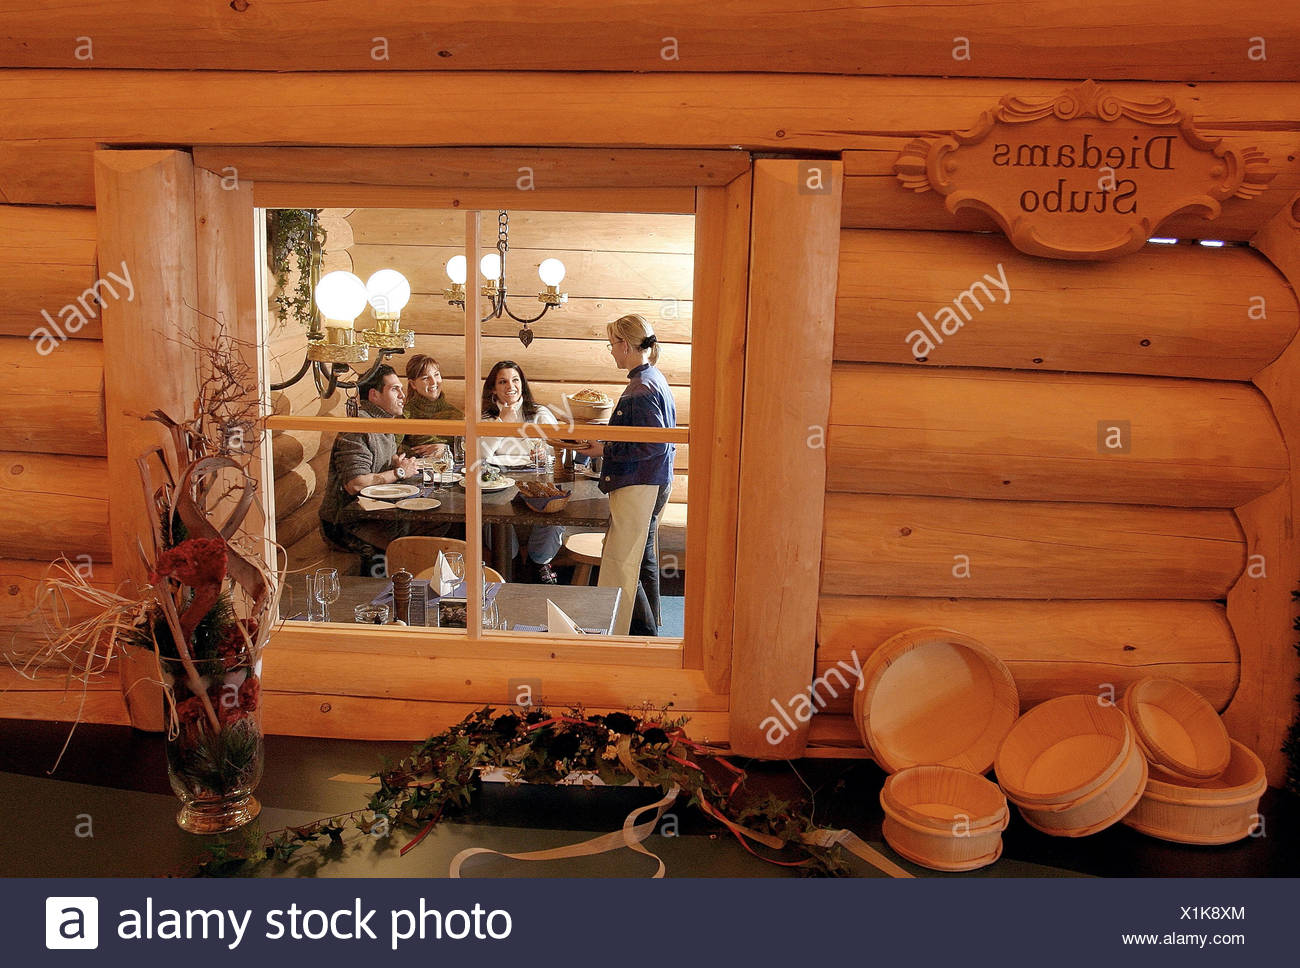 Ski Hut Inside Stockfotos & Ski Hut Inside Bilder - Alamy